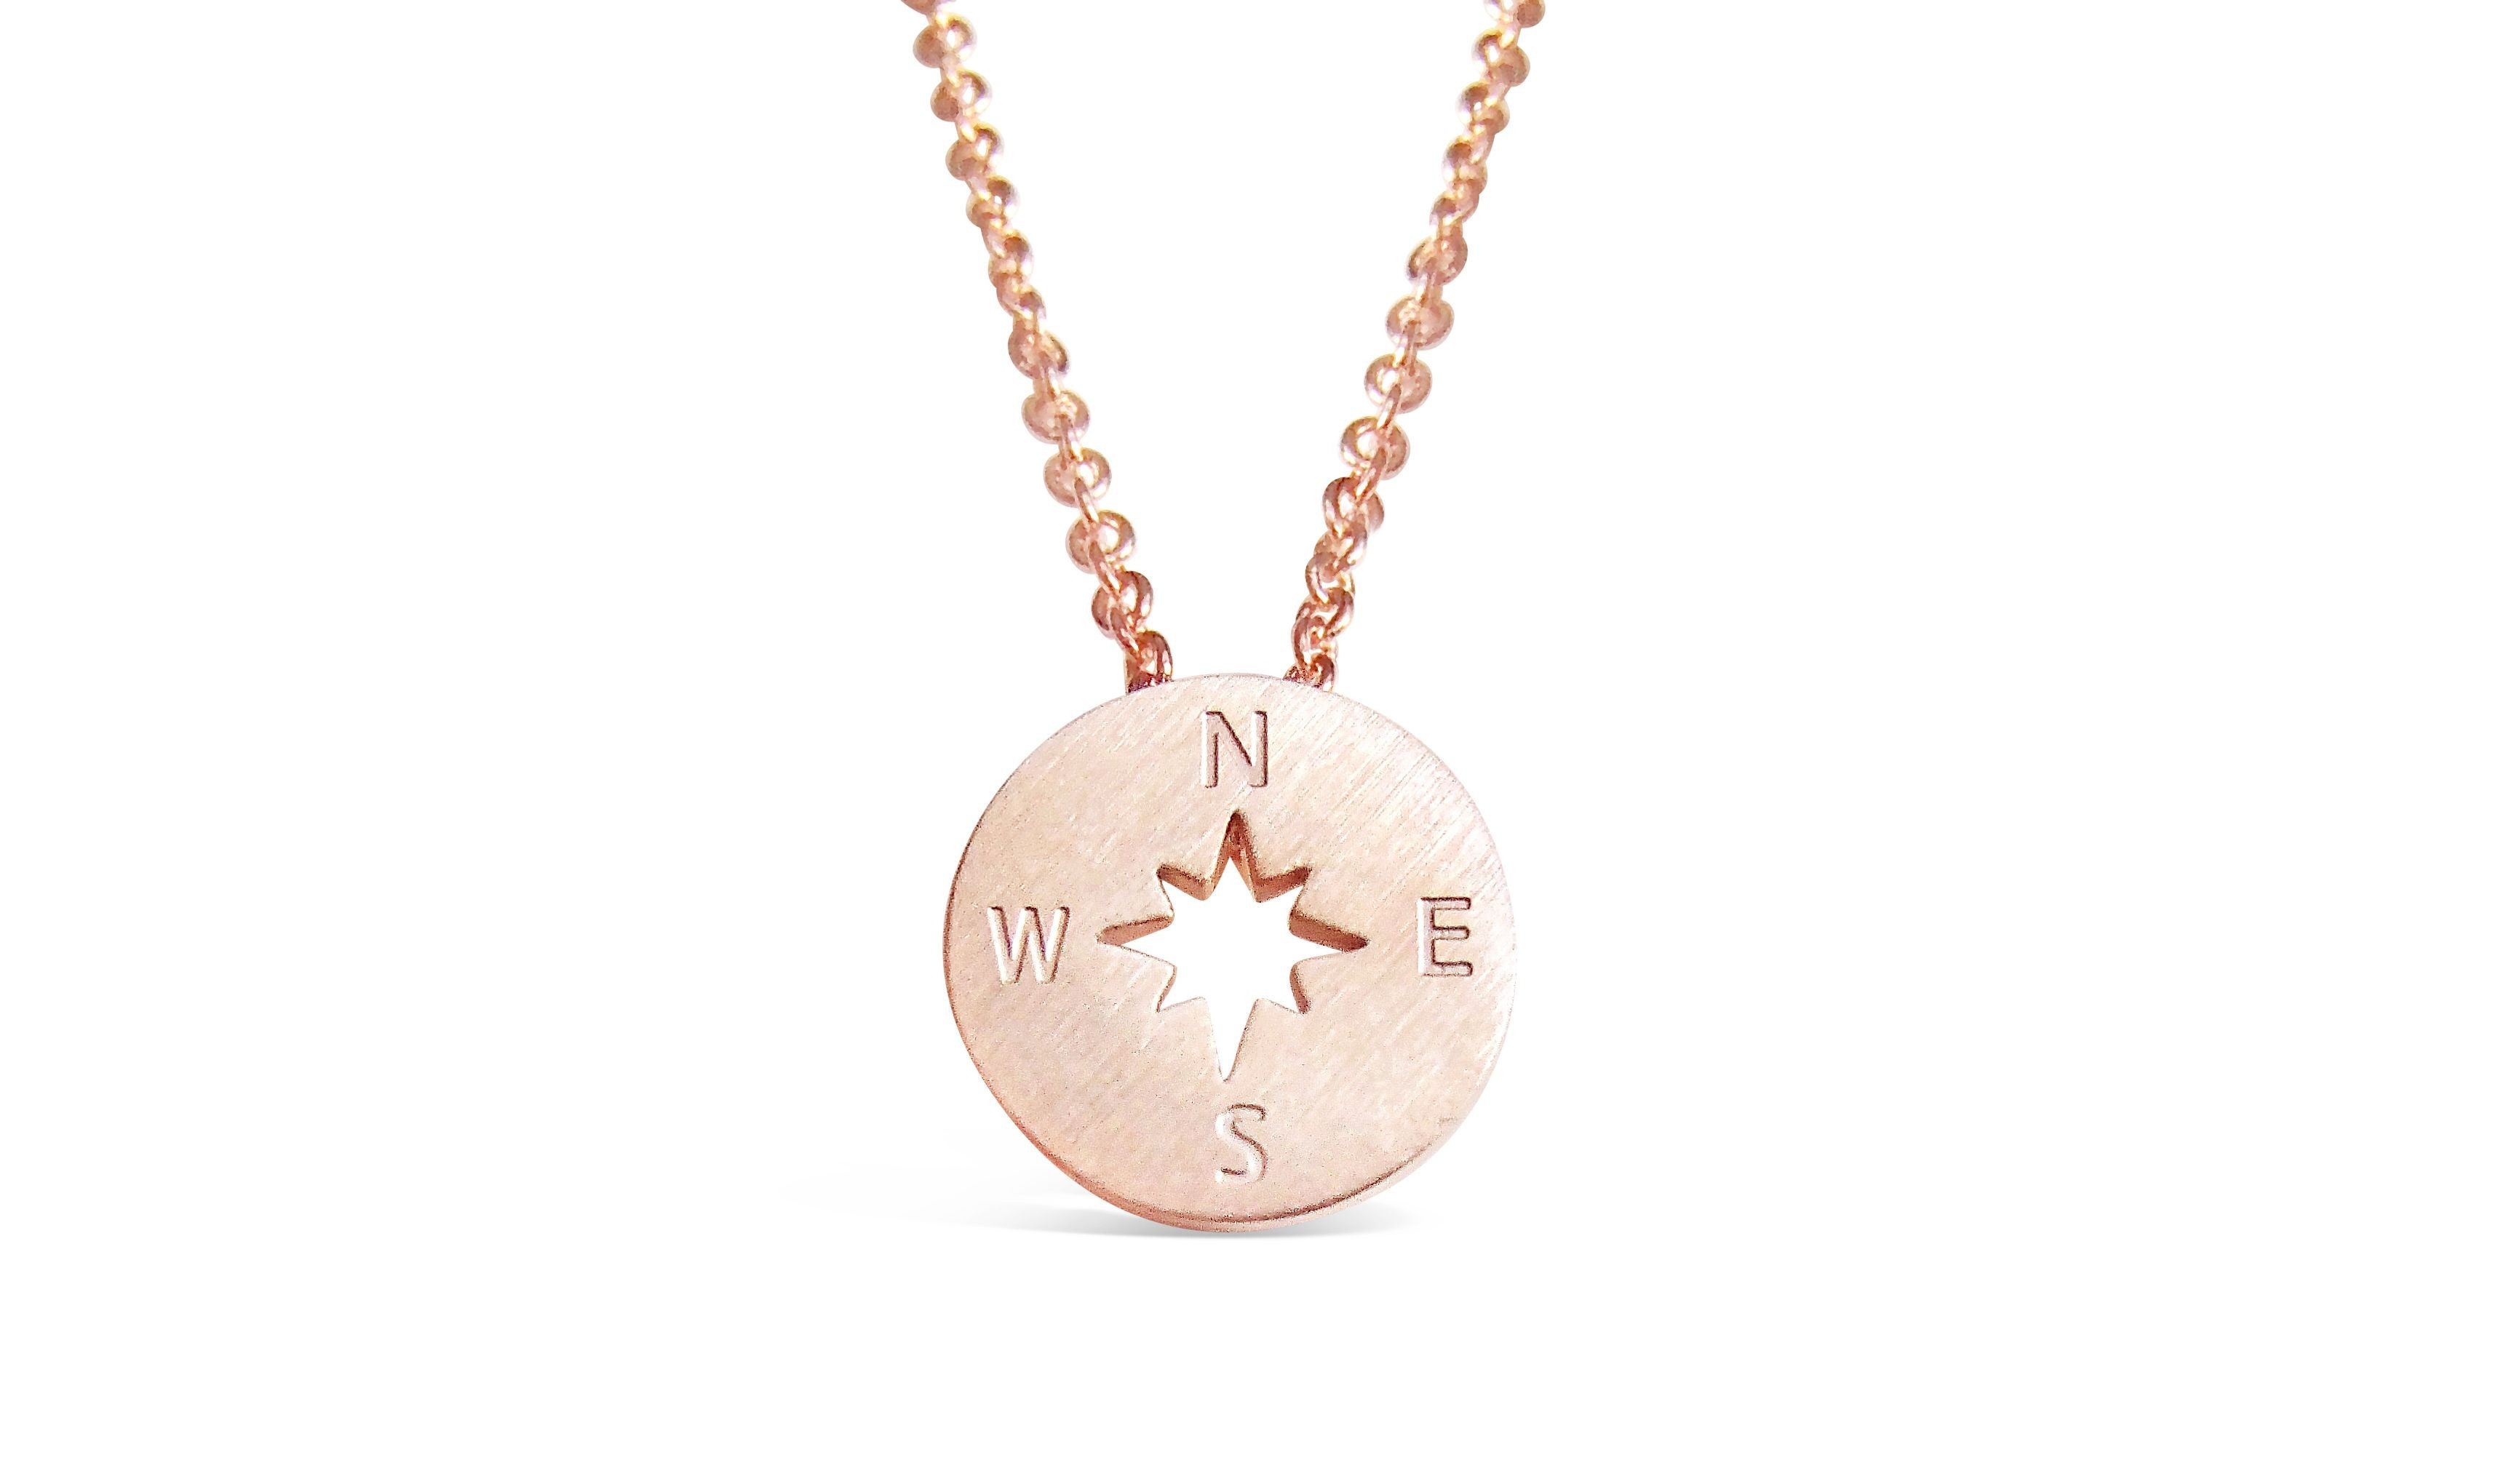 north wanderlust products true compass necklace friendship adventure gold